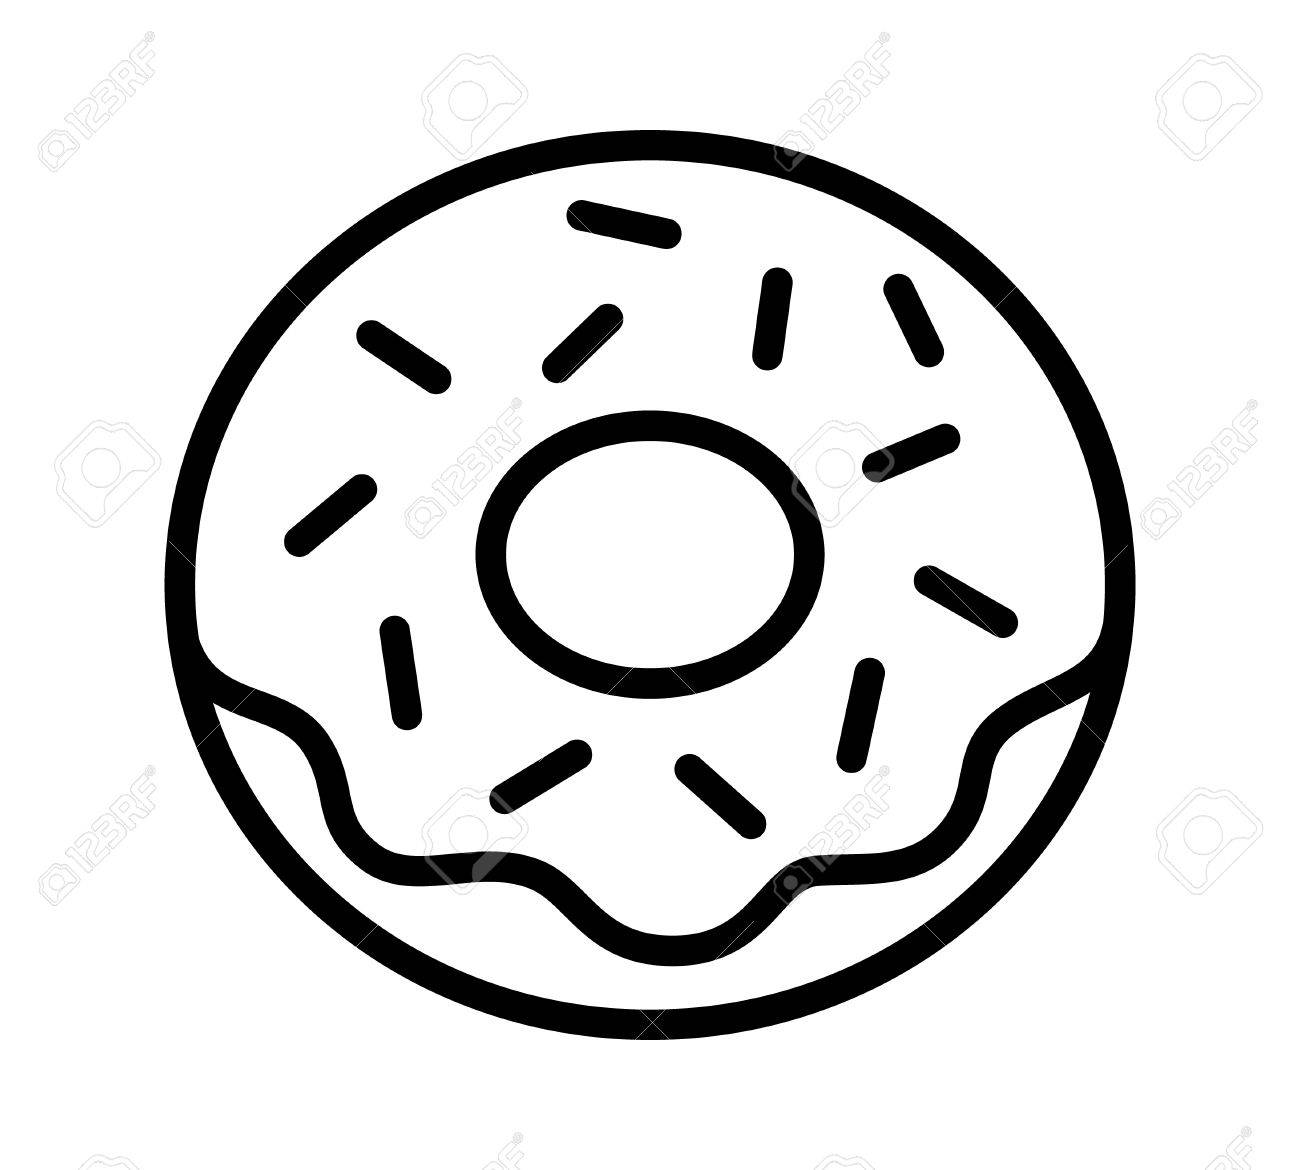 donut line drawing at getdrawings com free for personal use donut rh getdrawings com